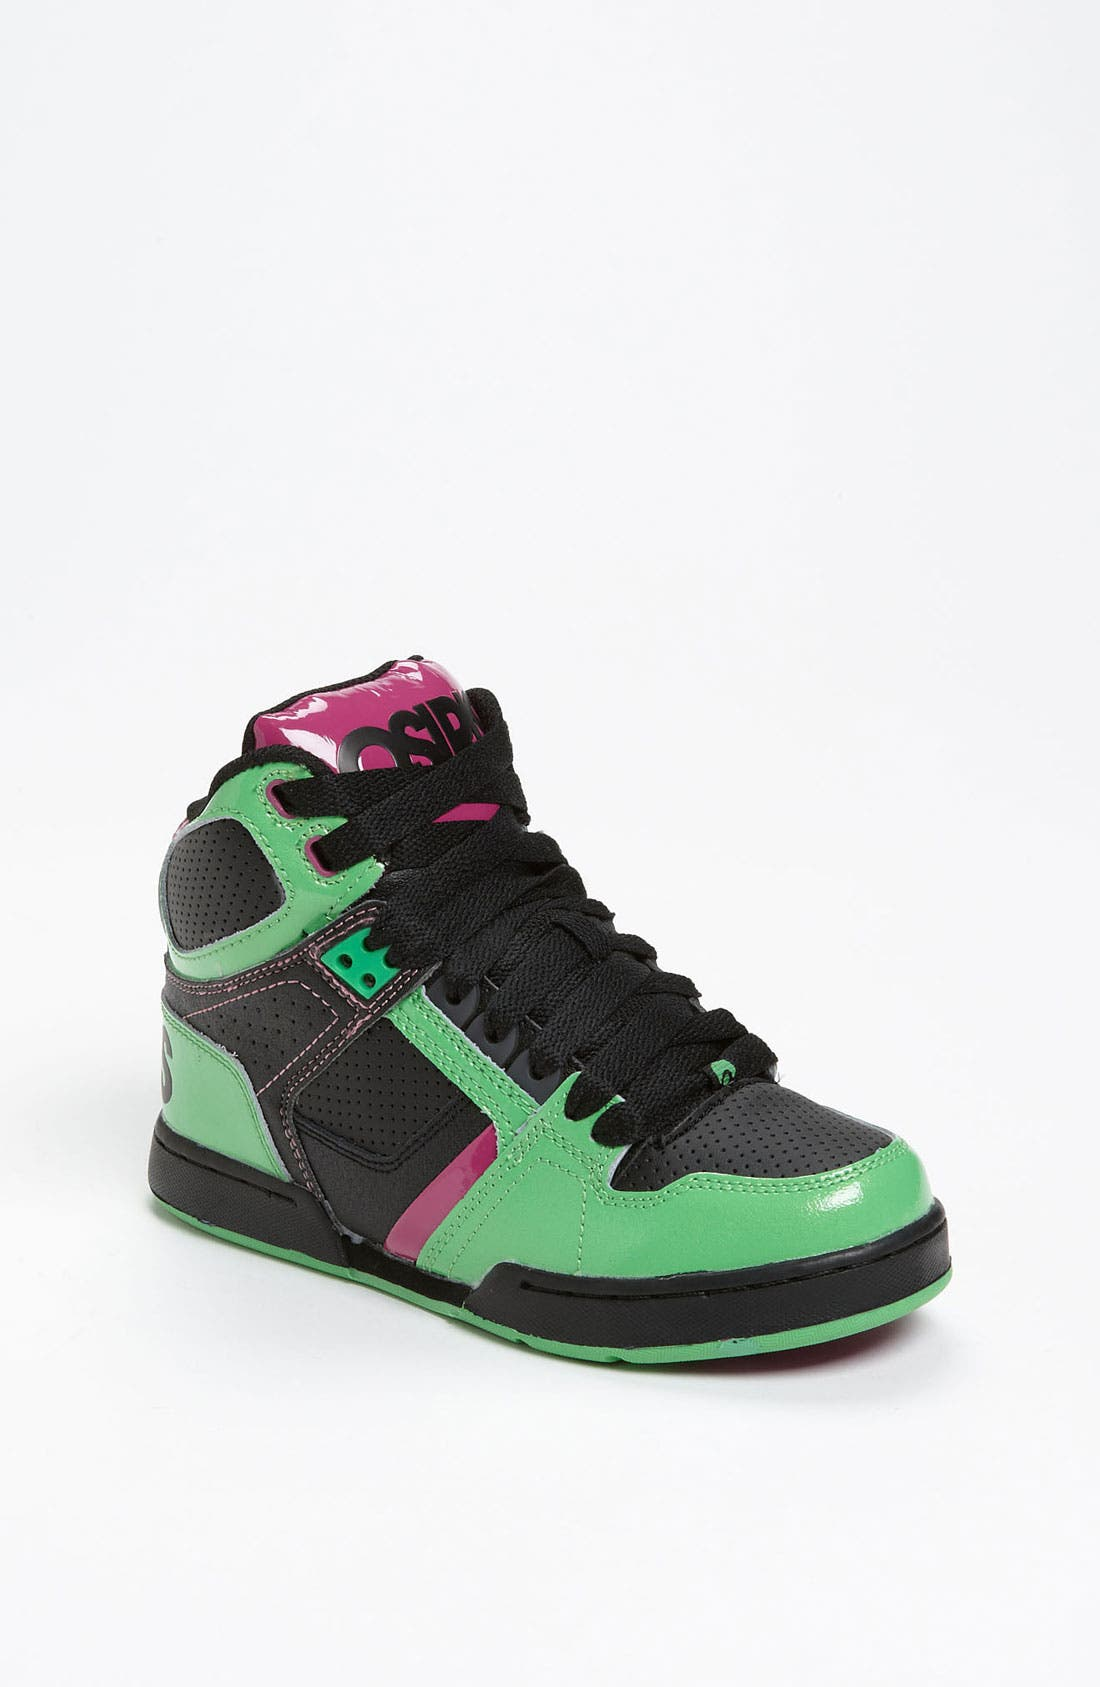 Alternate Image 1 Selected - Osiris 'NYC 83' Skate Shoe (Big Kid)